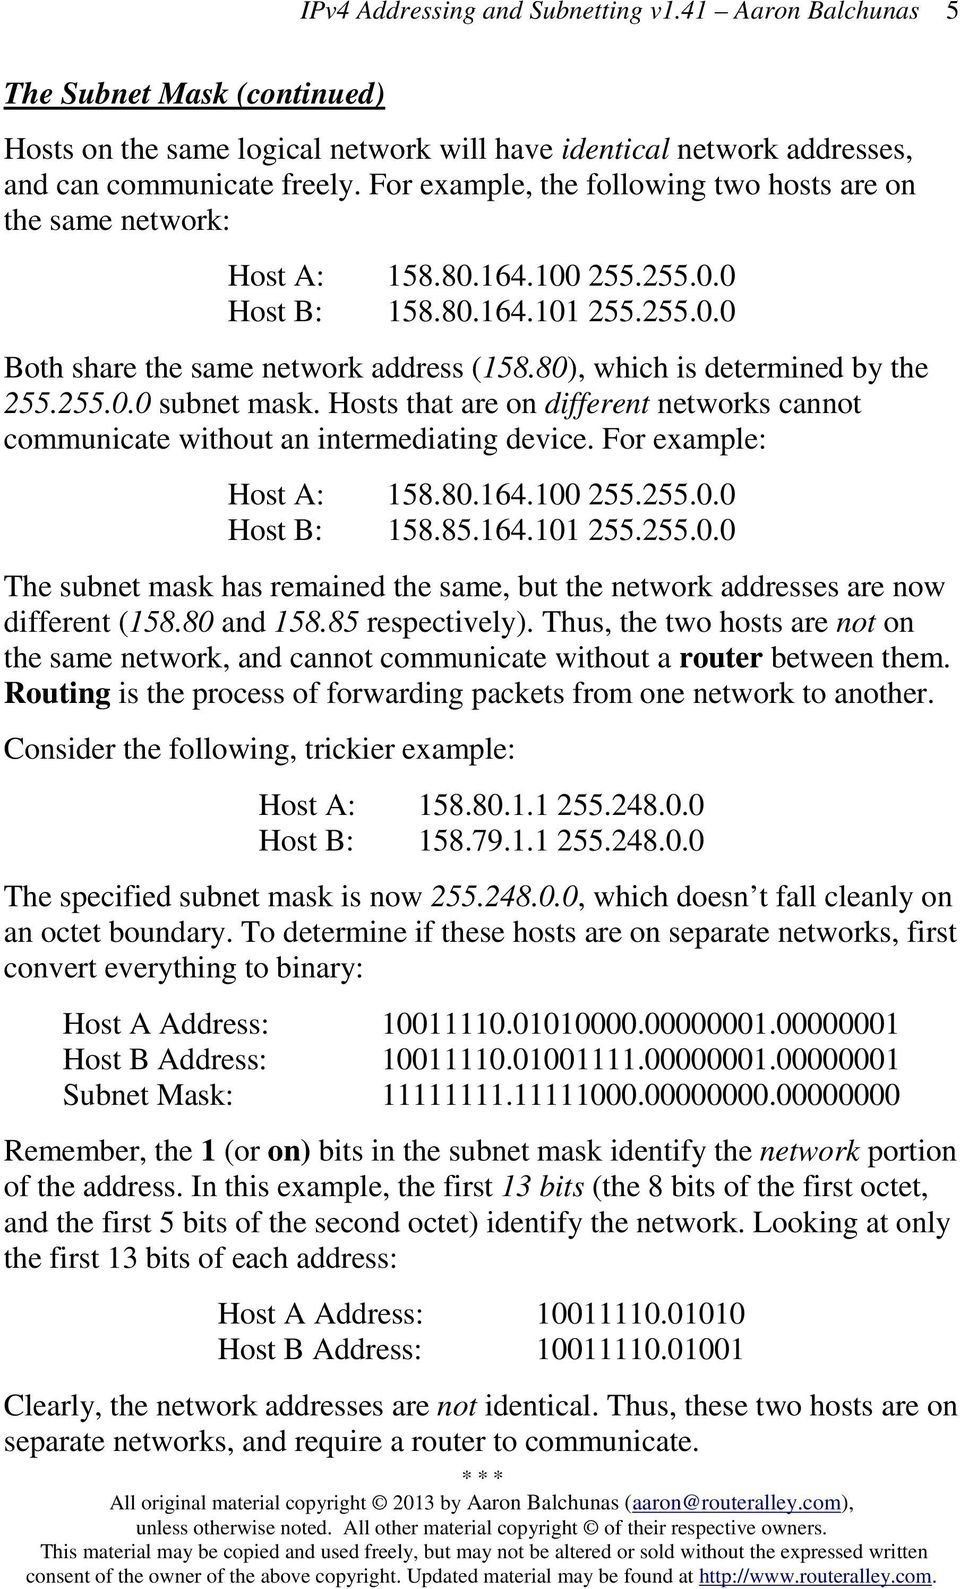 80), which is determined by the 255.255.0.0 subnet mask. Hosts that are on different networks cannot communicate without an intermediating device. For example: Host A: 158.80.164.100 255.255.0.0 Host B: 158.